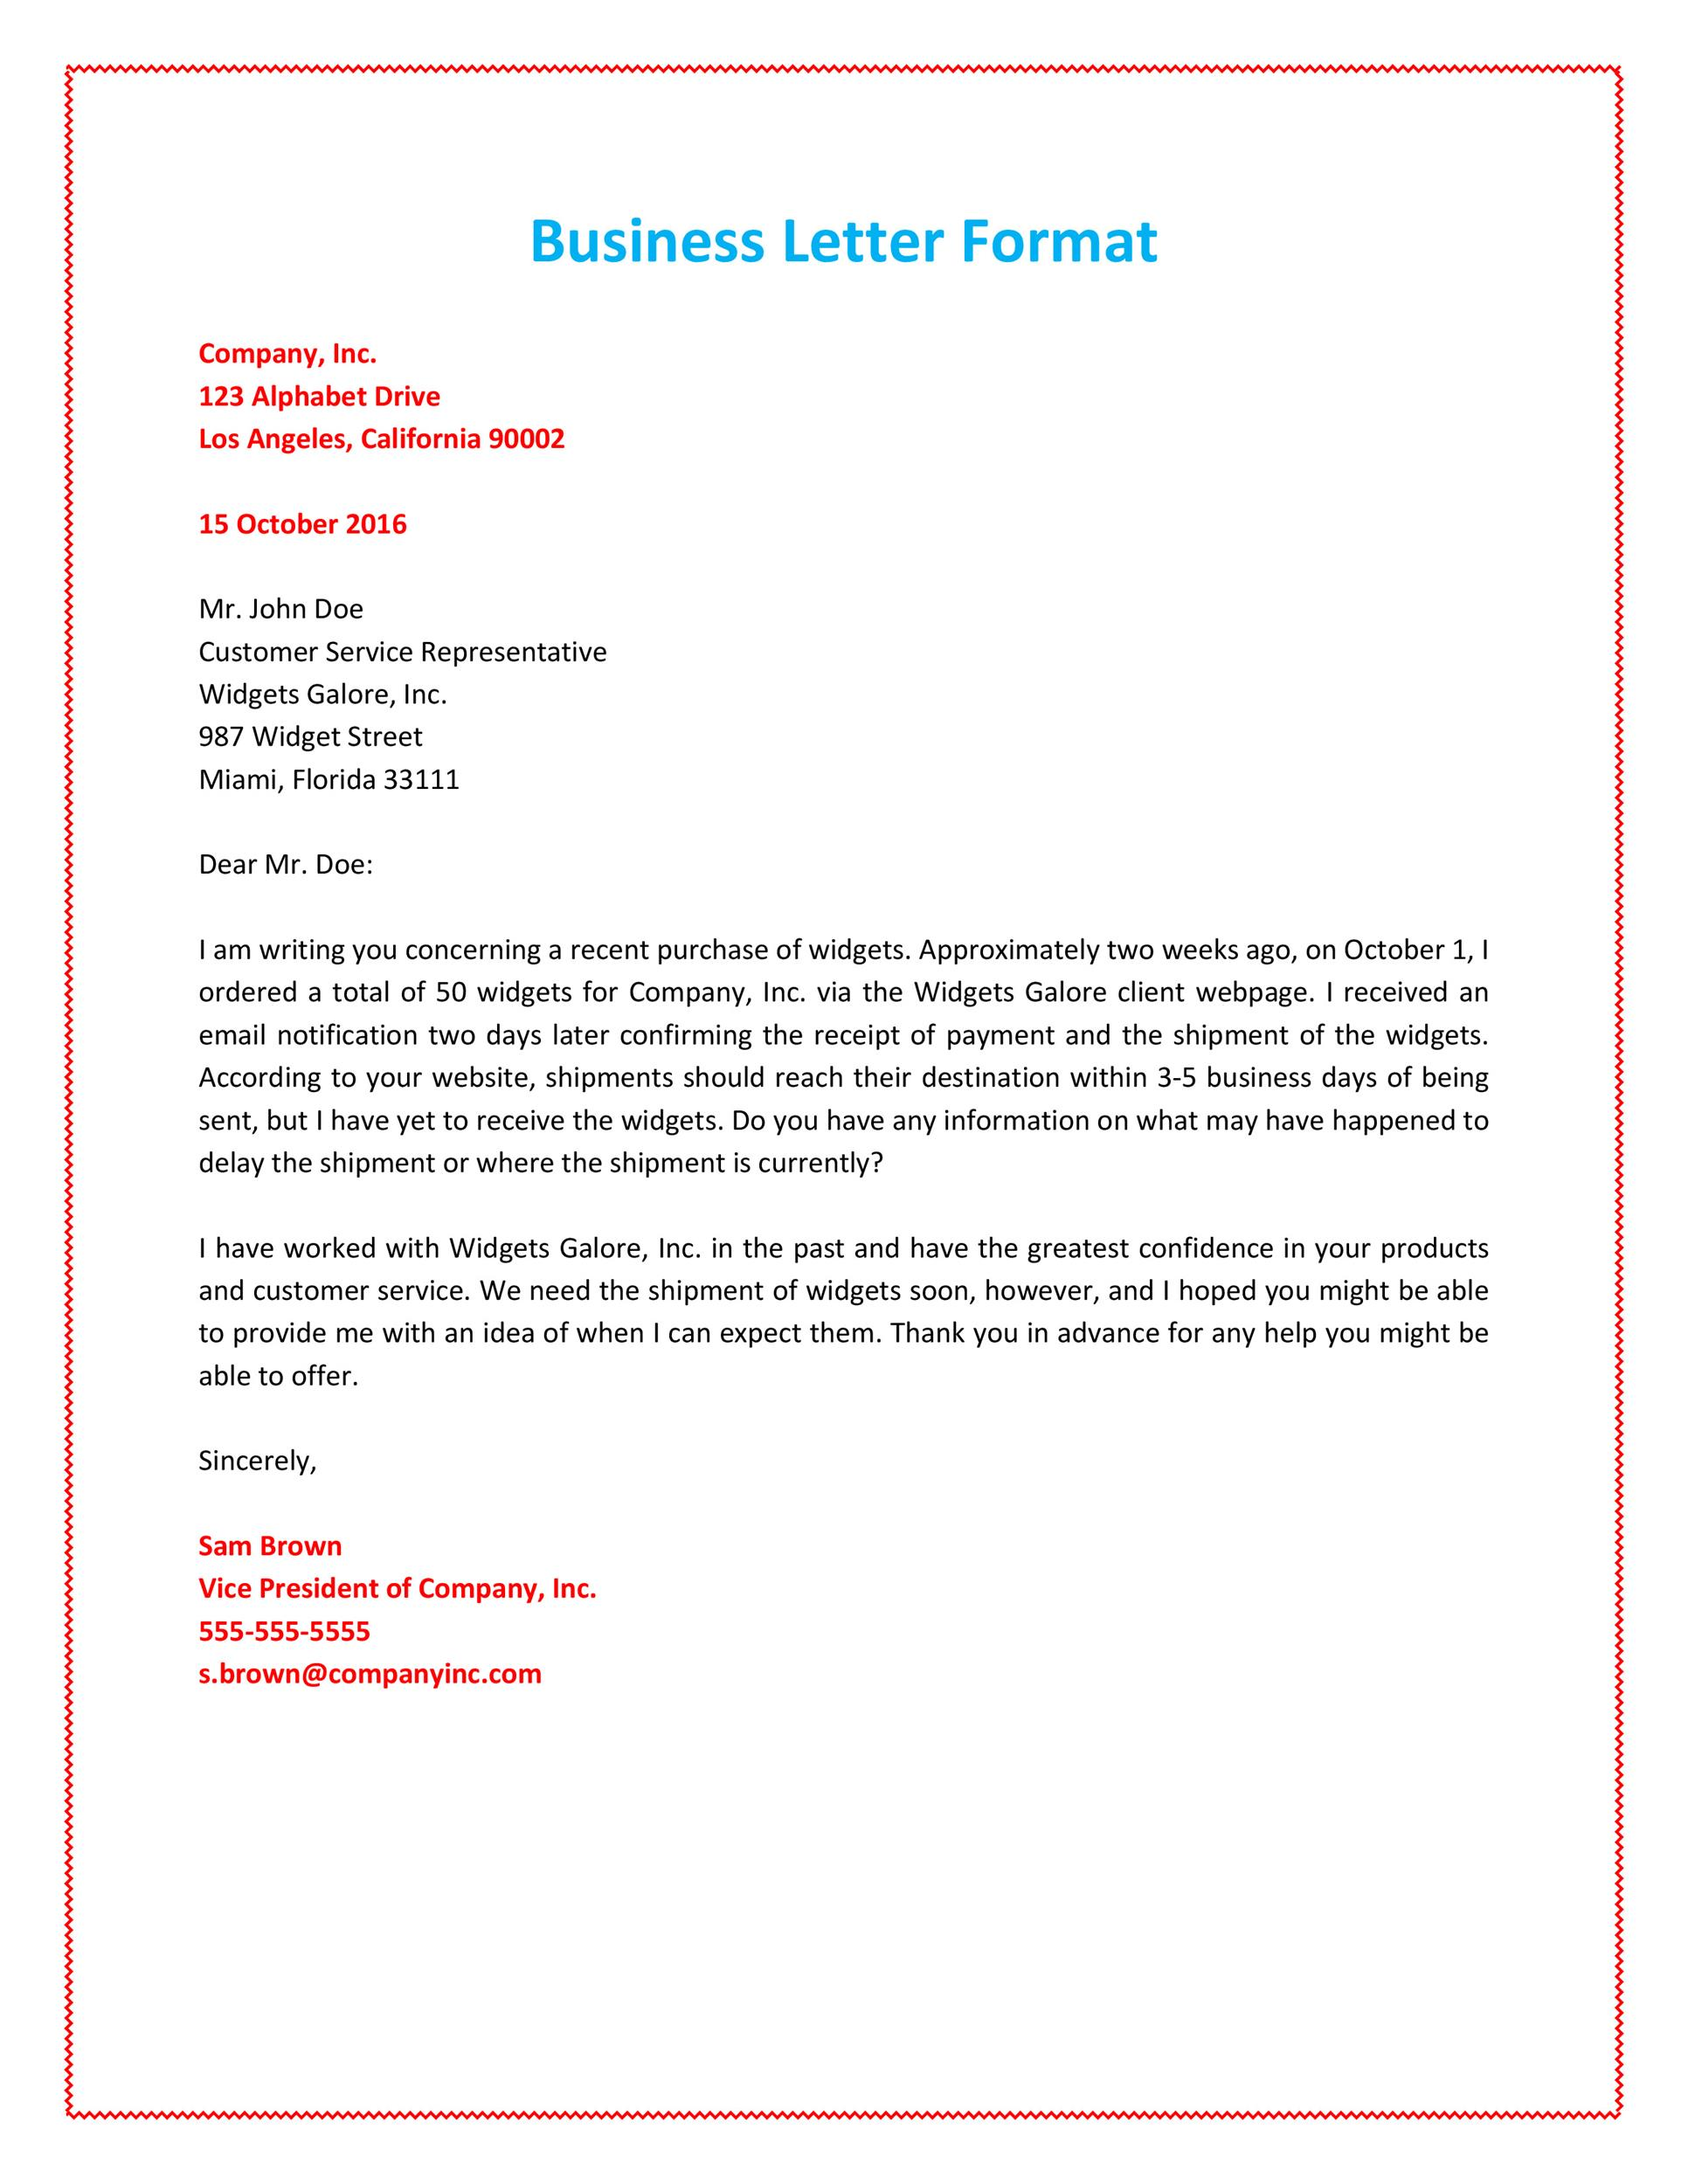 35 formal business letter format templates examples template lab business letter format example spiritdancerdesigns Gallery